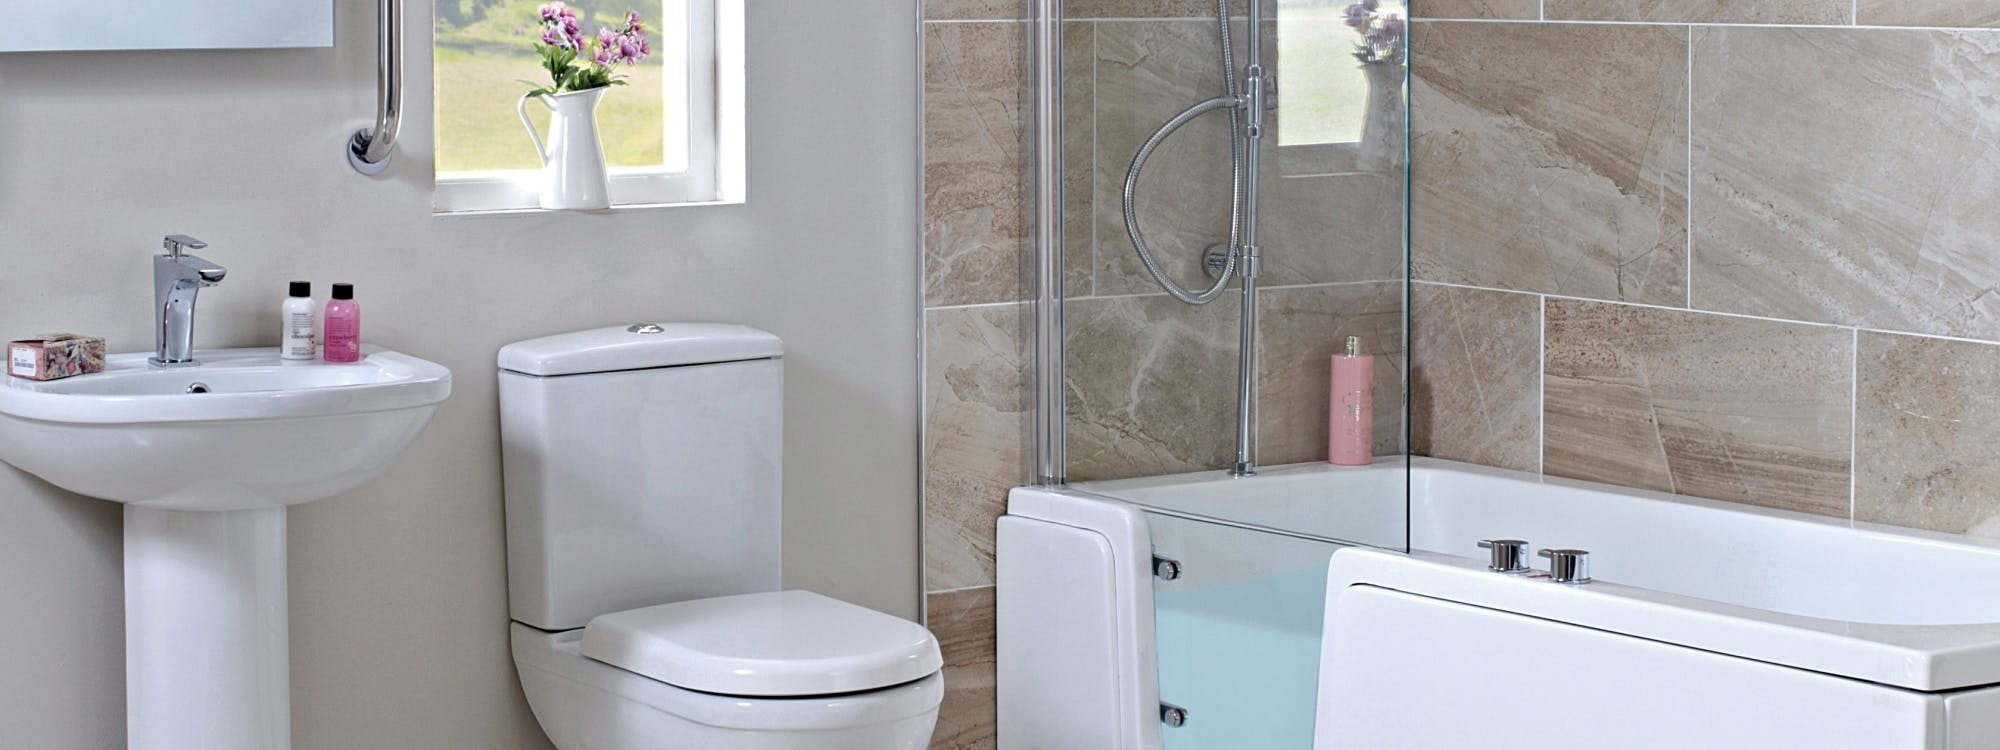 We design, supply & install easy access bathrooms and walk-in baths.